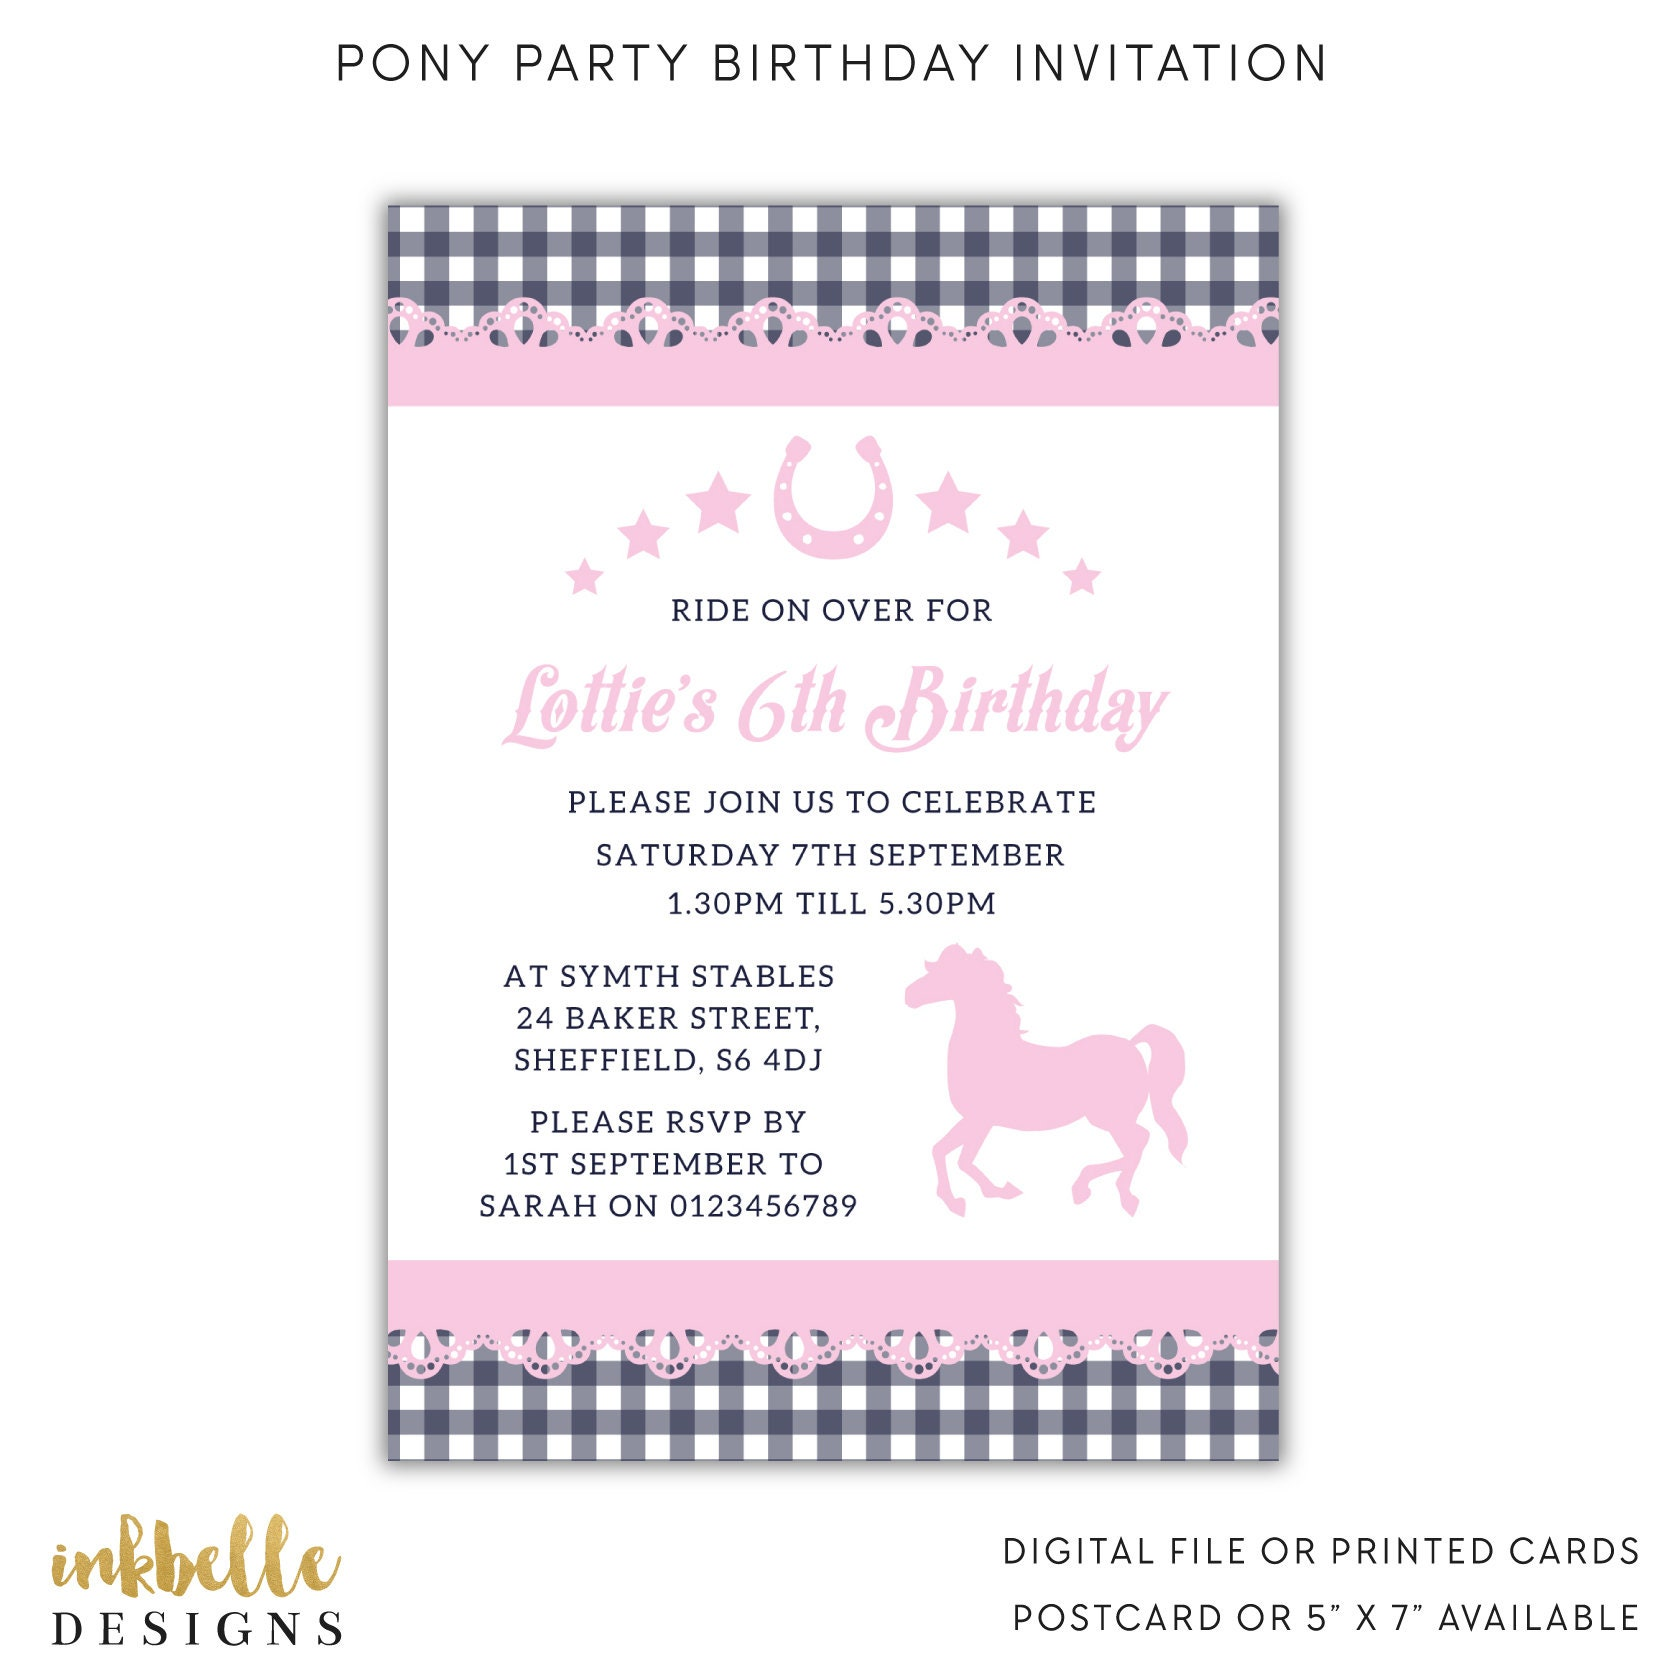 Pony Birthday Invitation Printed Cards Digital File PDF | Etsy